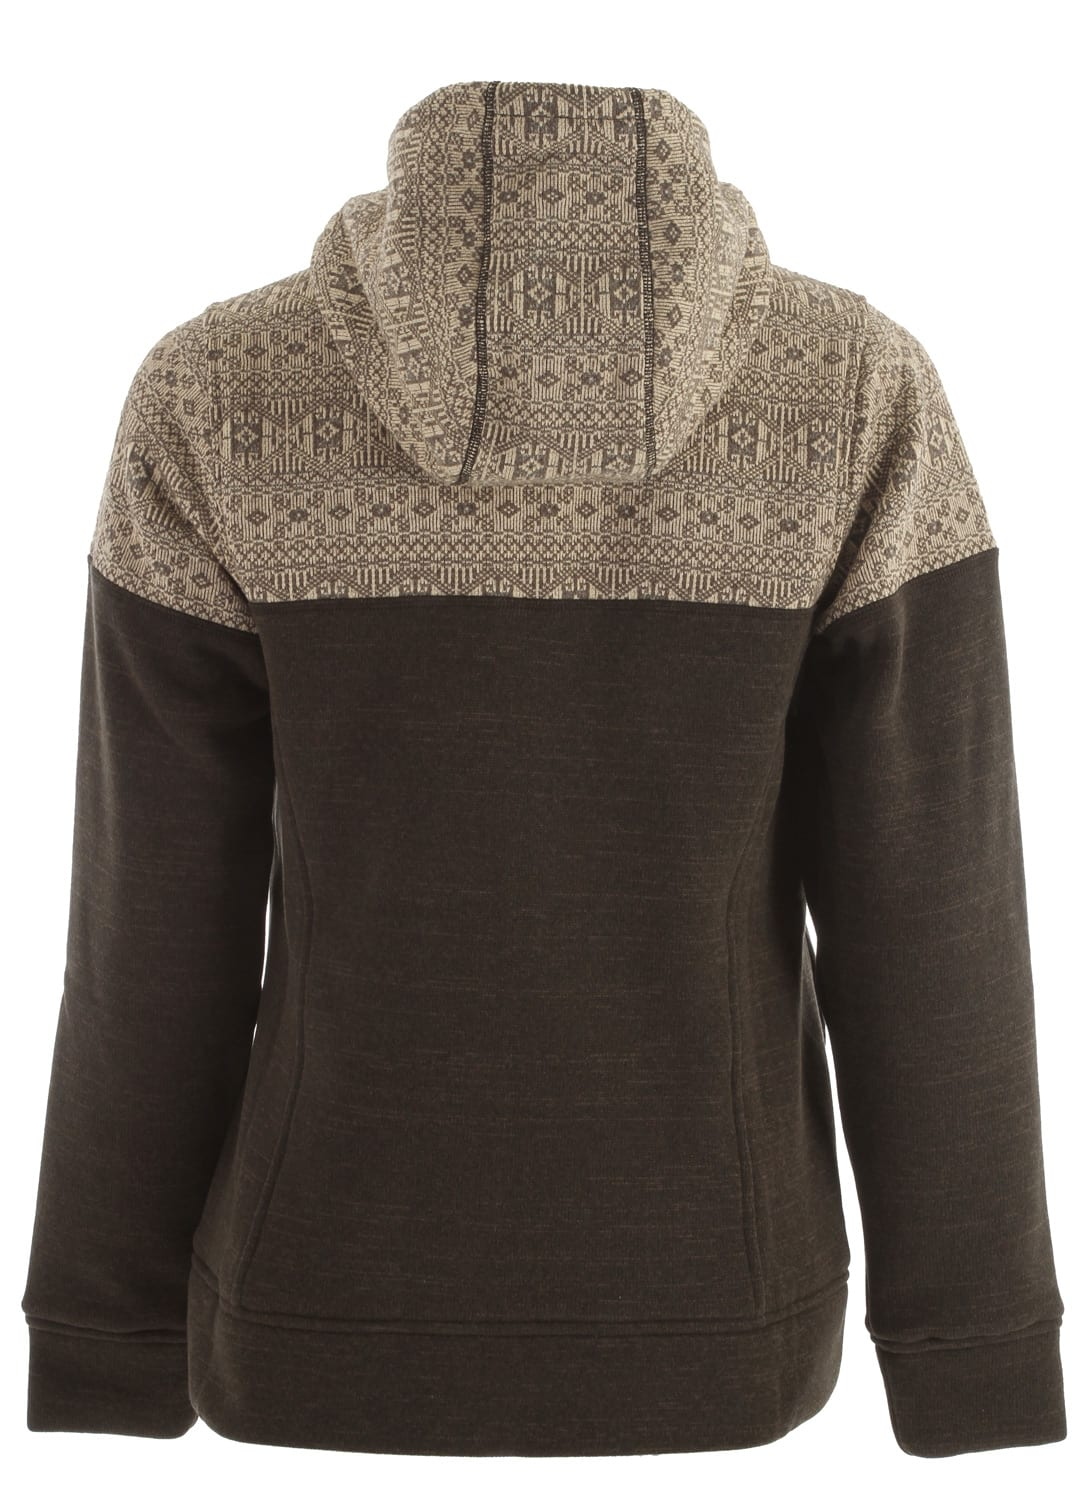 Patagonia Better Sweater Icelandic Hoody Jacket Womens